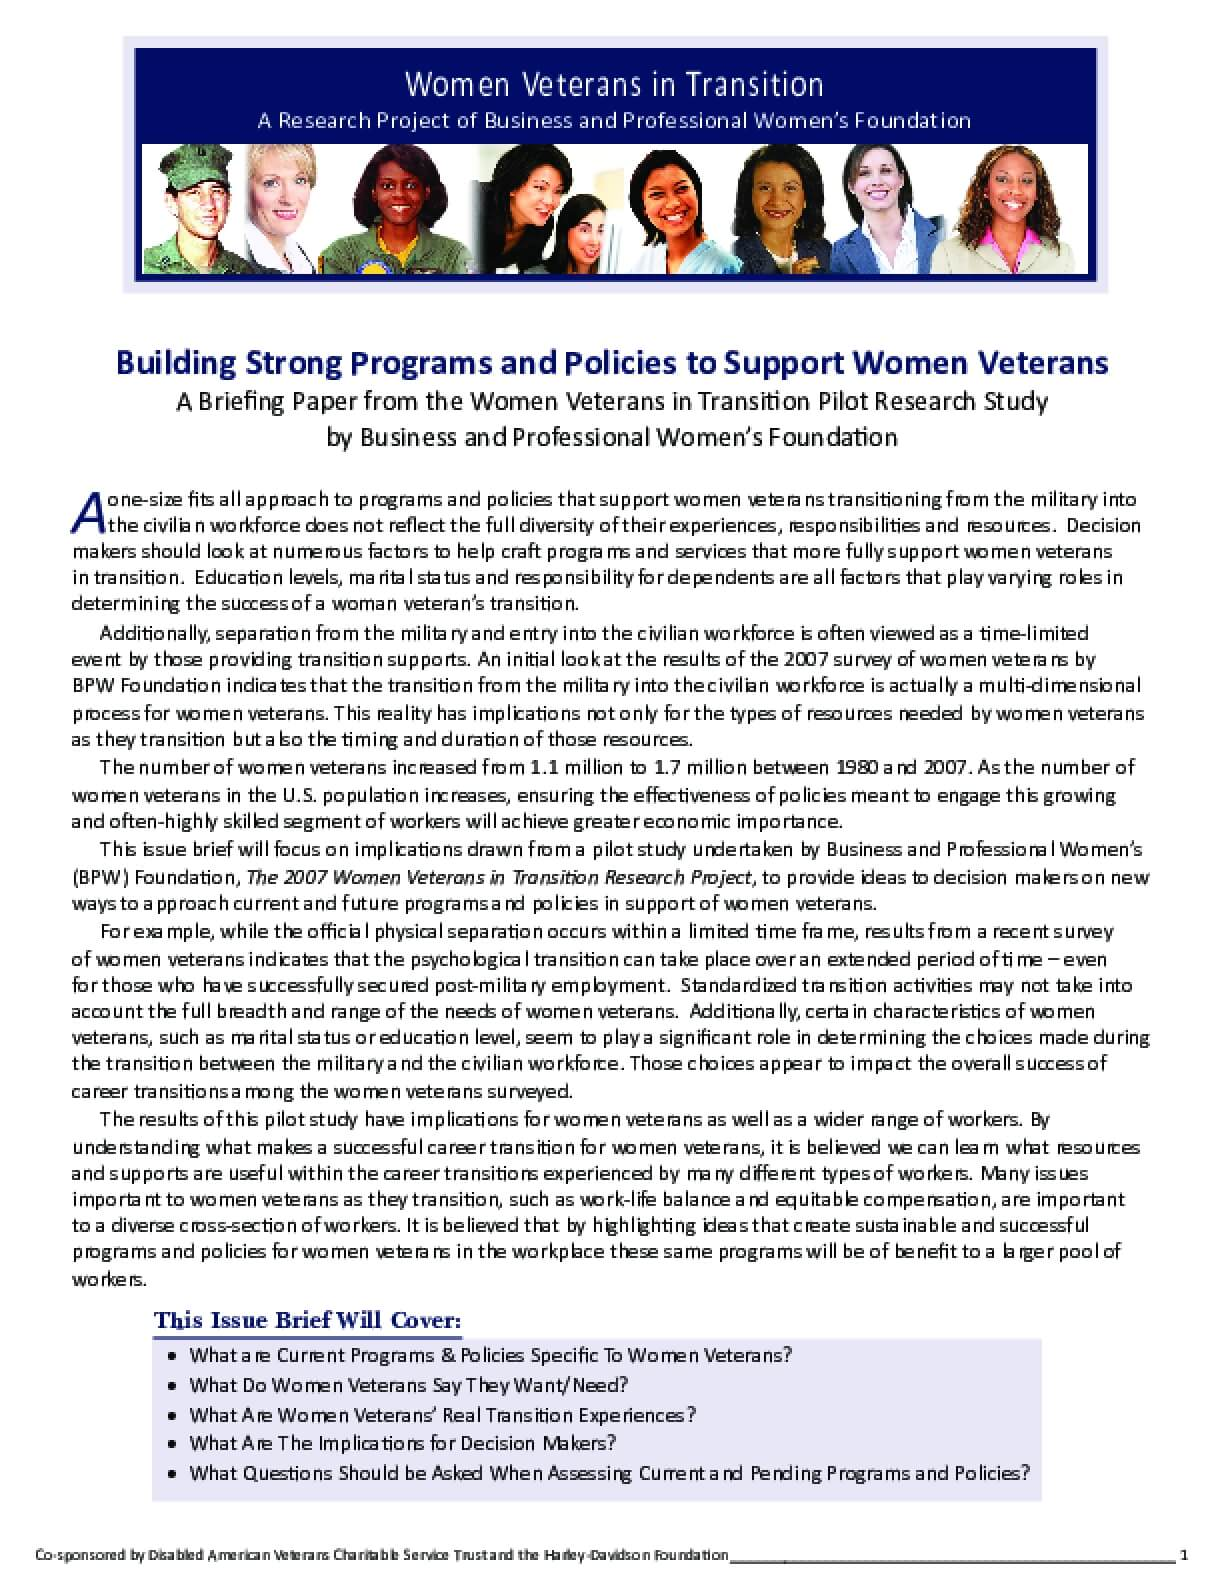 Building Strong Programs and Policies to Support Women Veterans